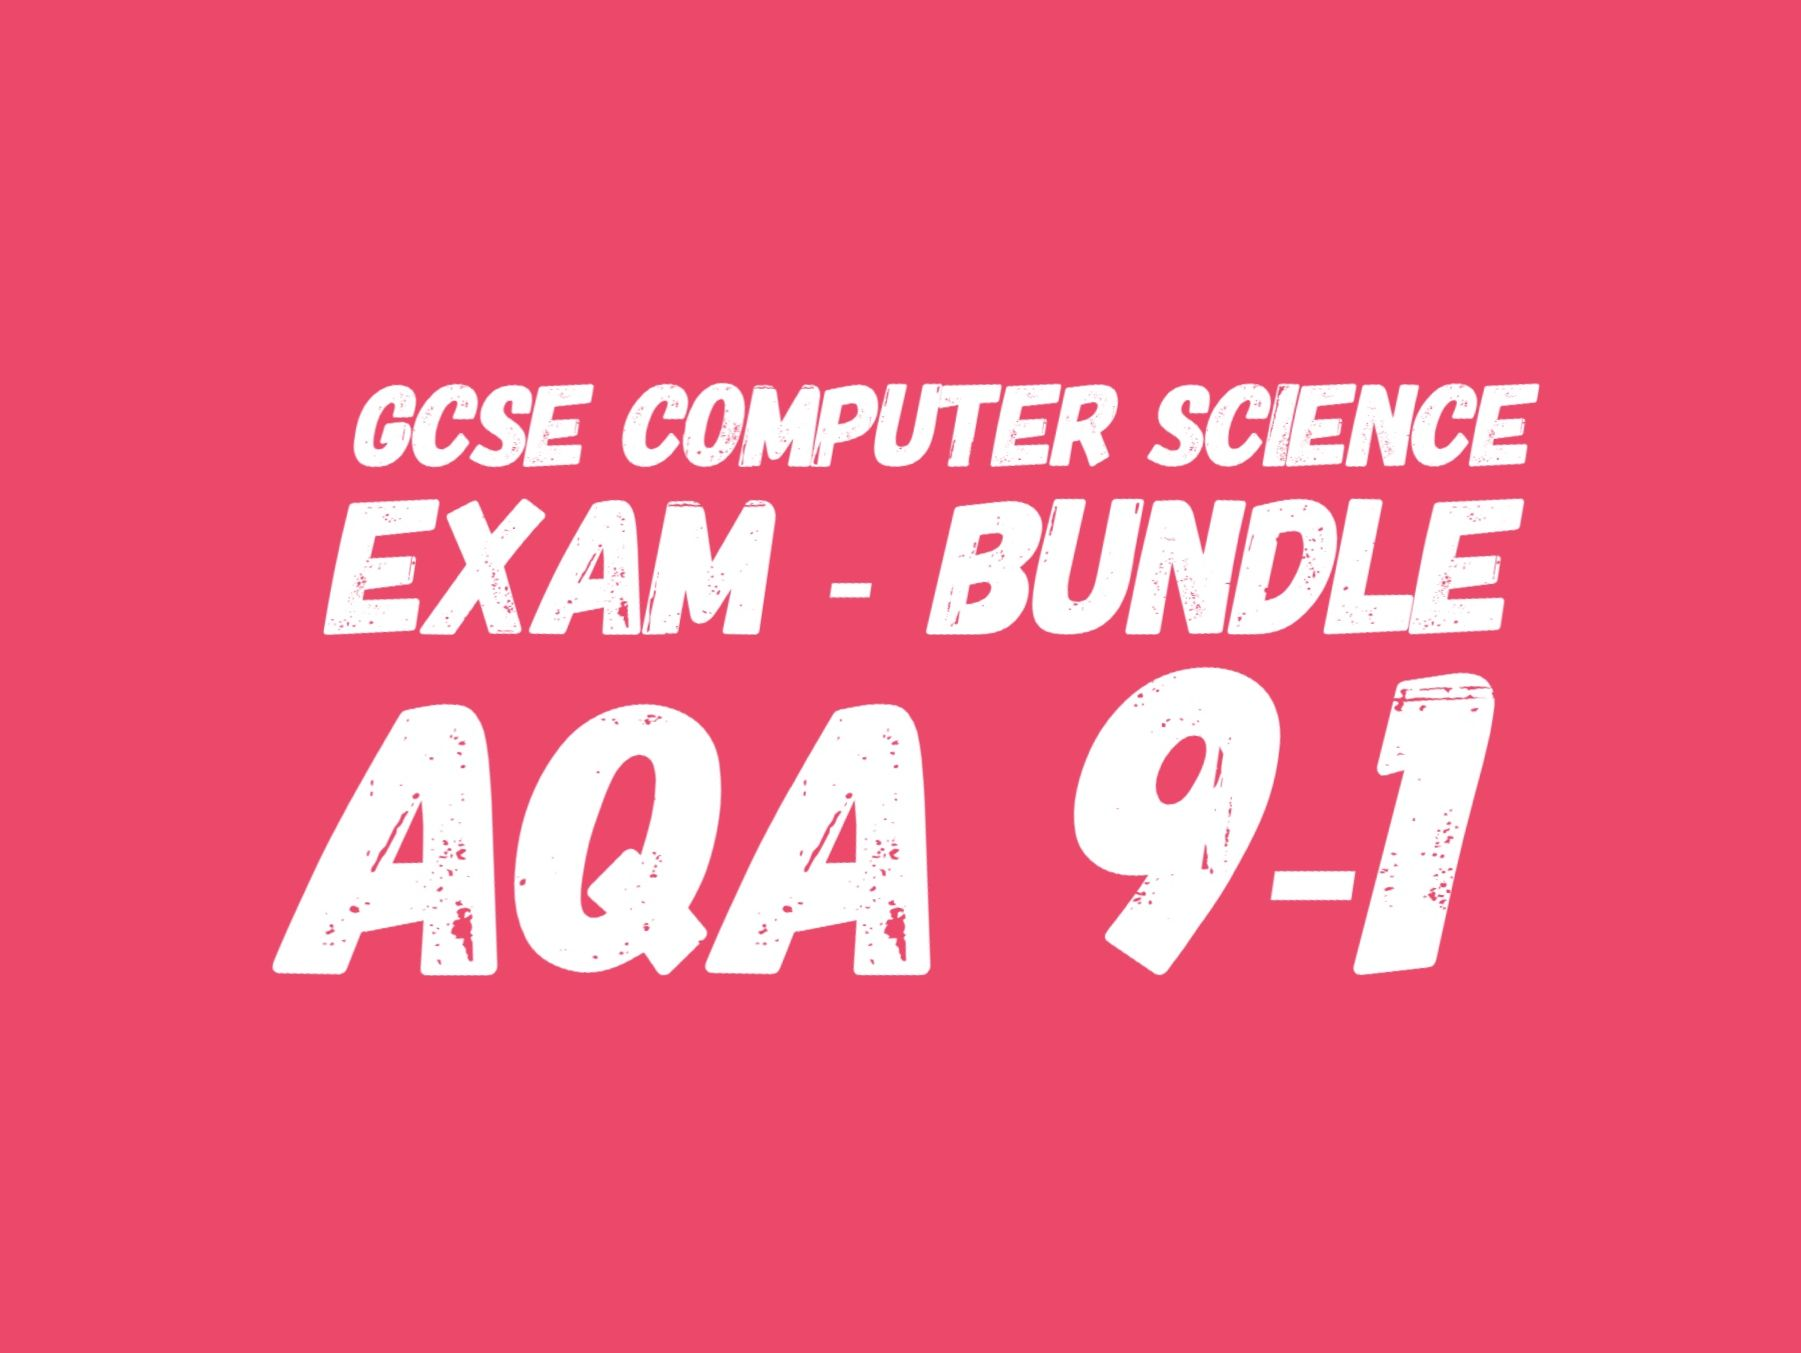 GCSE Mock Exam and Mini Test 2 - save 50%